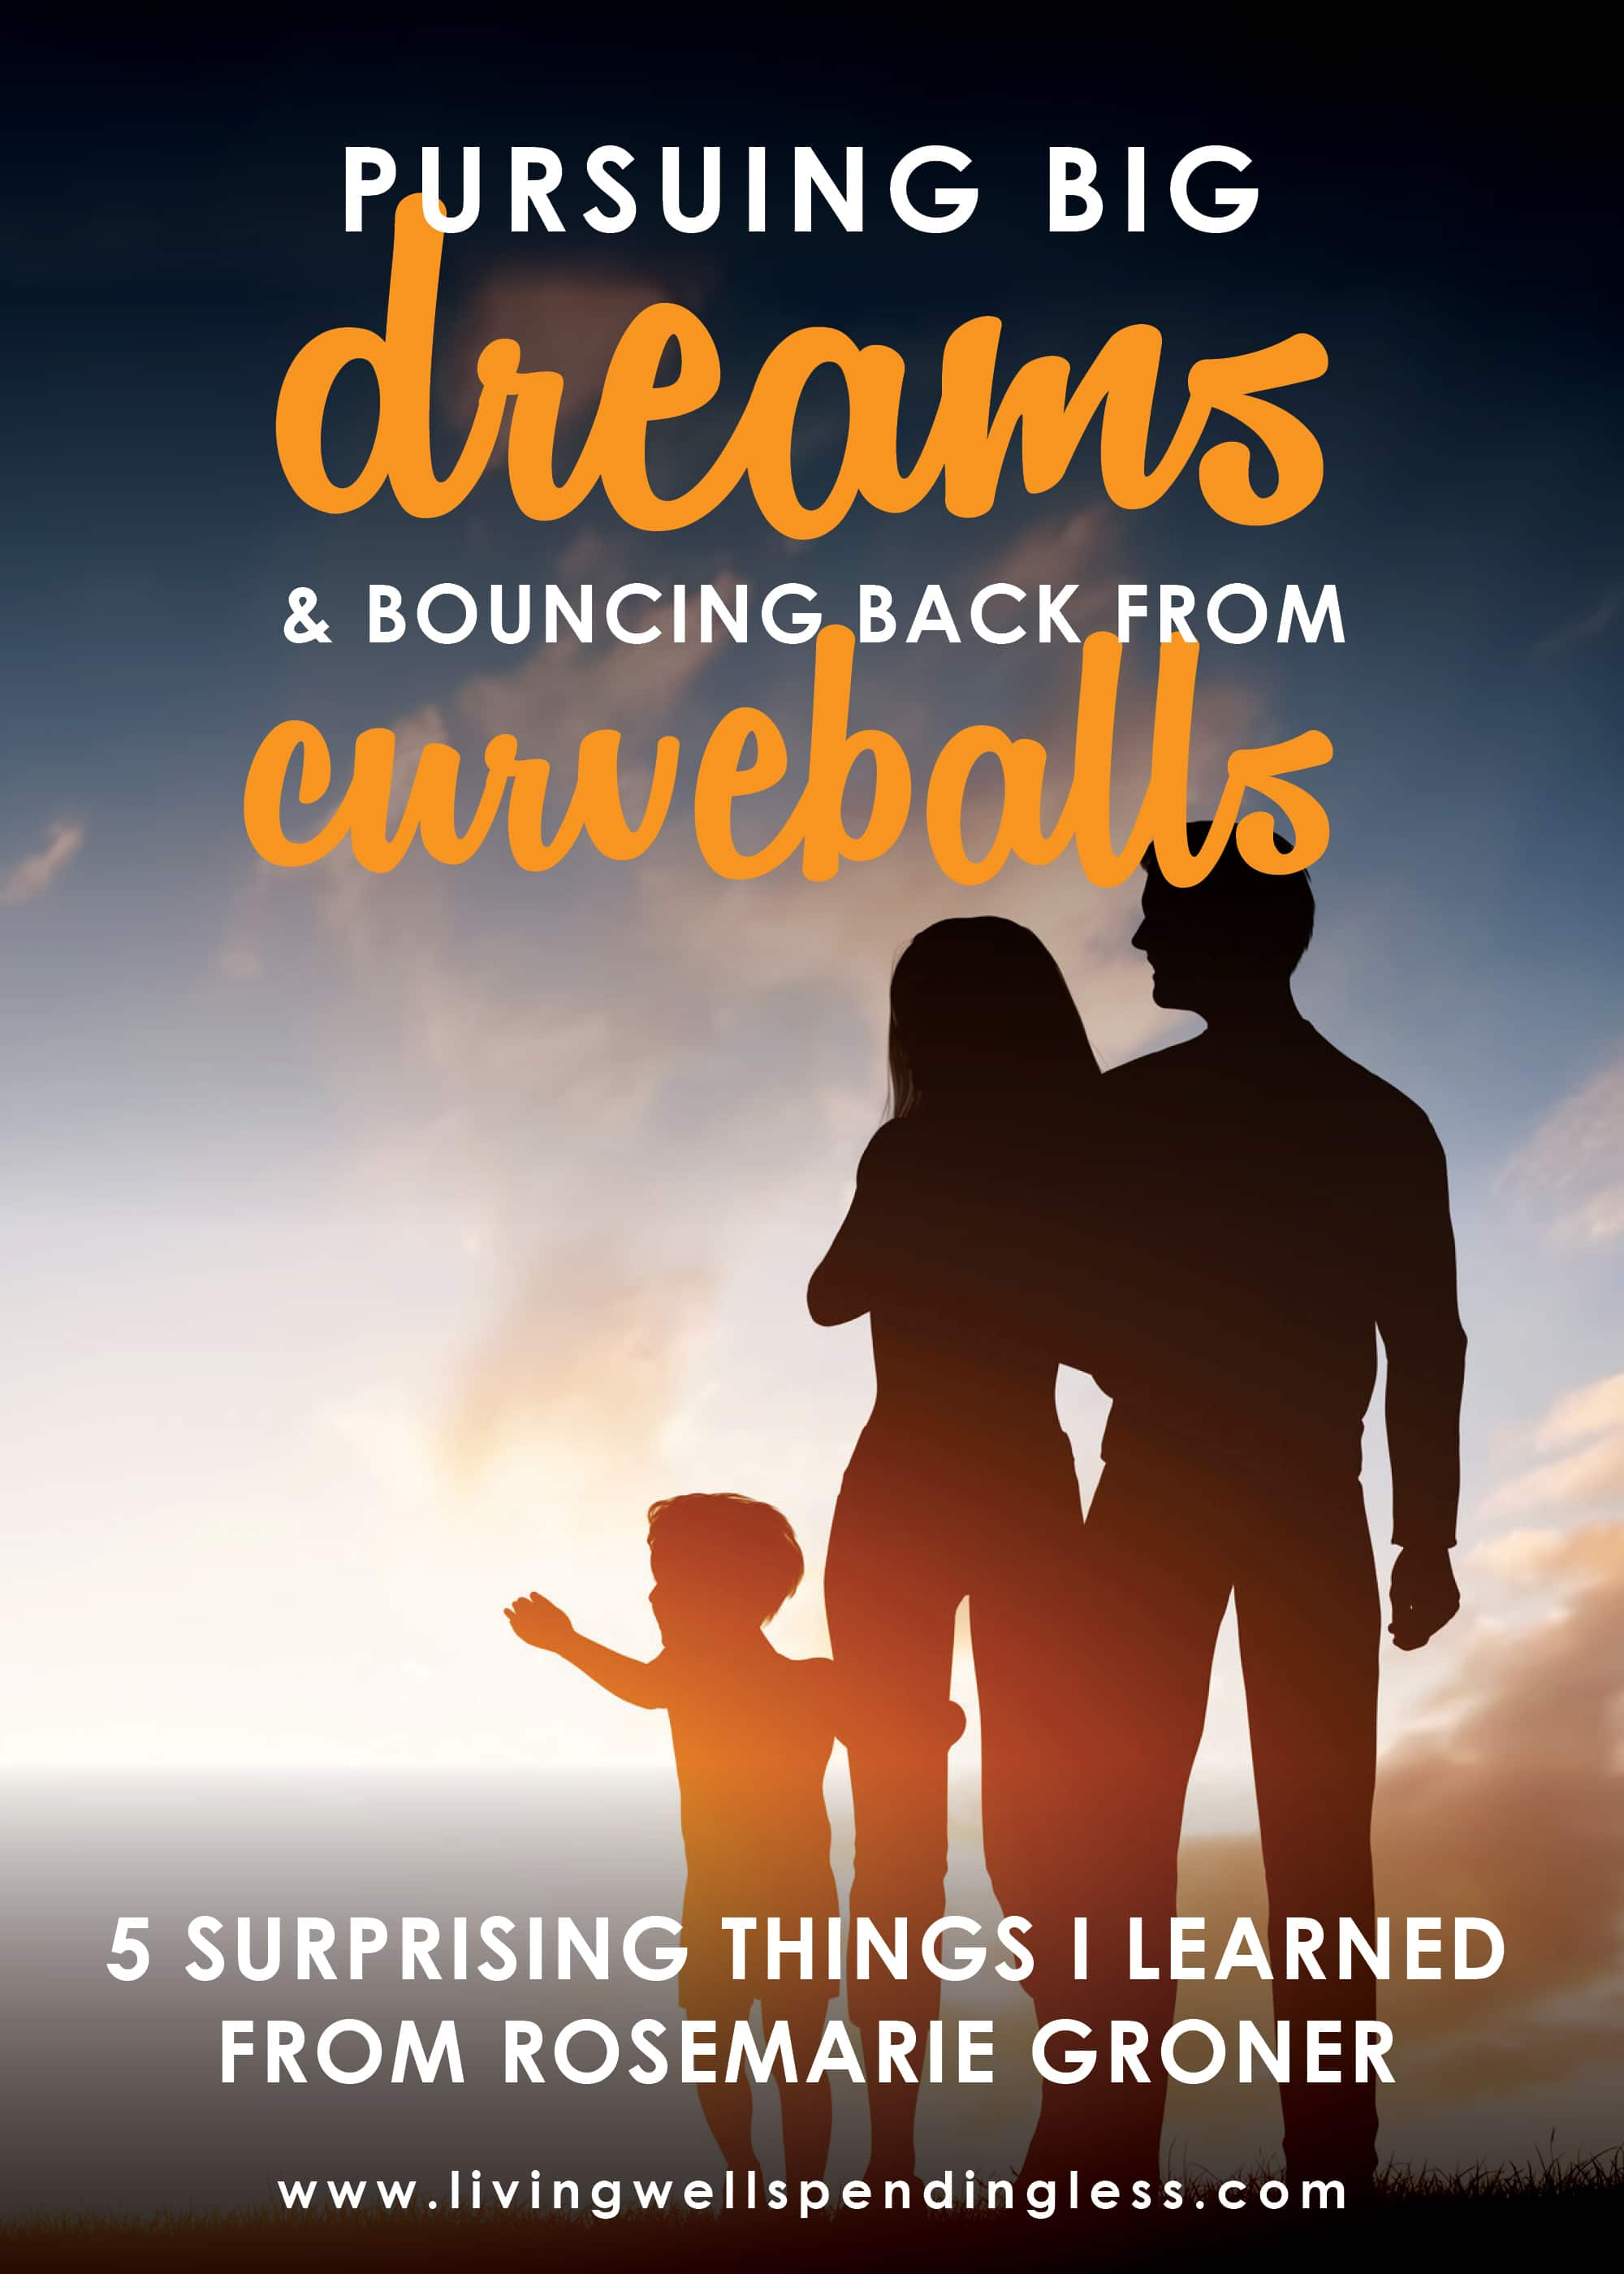 Pursuing Big Dreams and Bouncing Back From Curve Balls